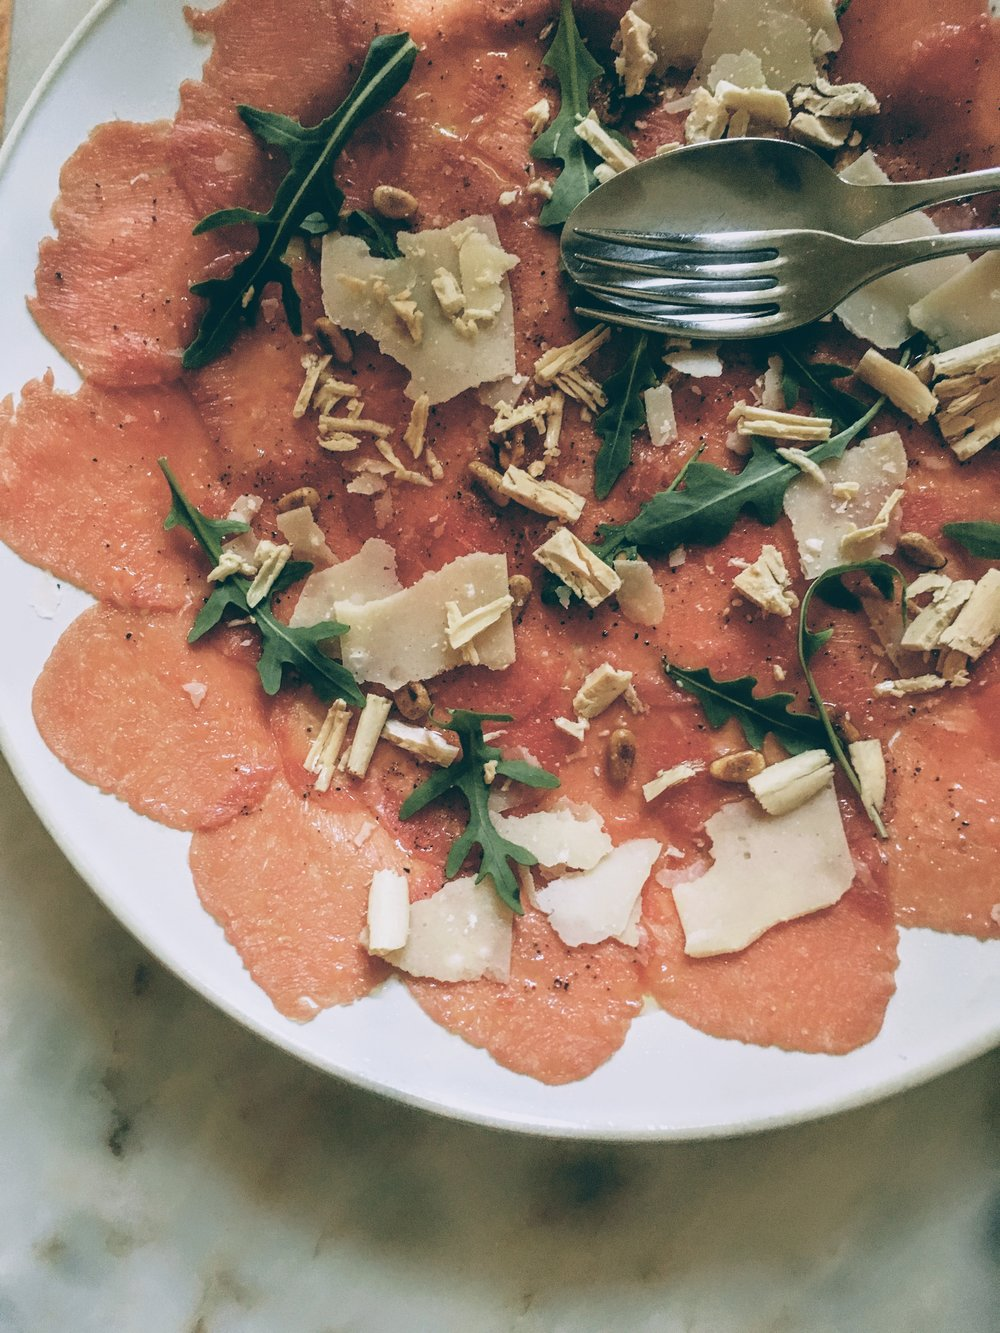 Beef carpaccio sprinkled with foie gras shavings, parmesan cheese and rocket, at Pizzaria Lisboa